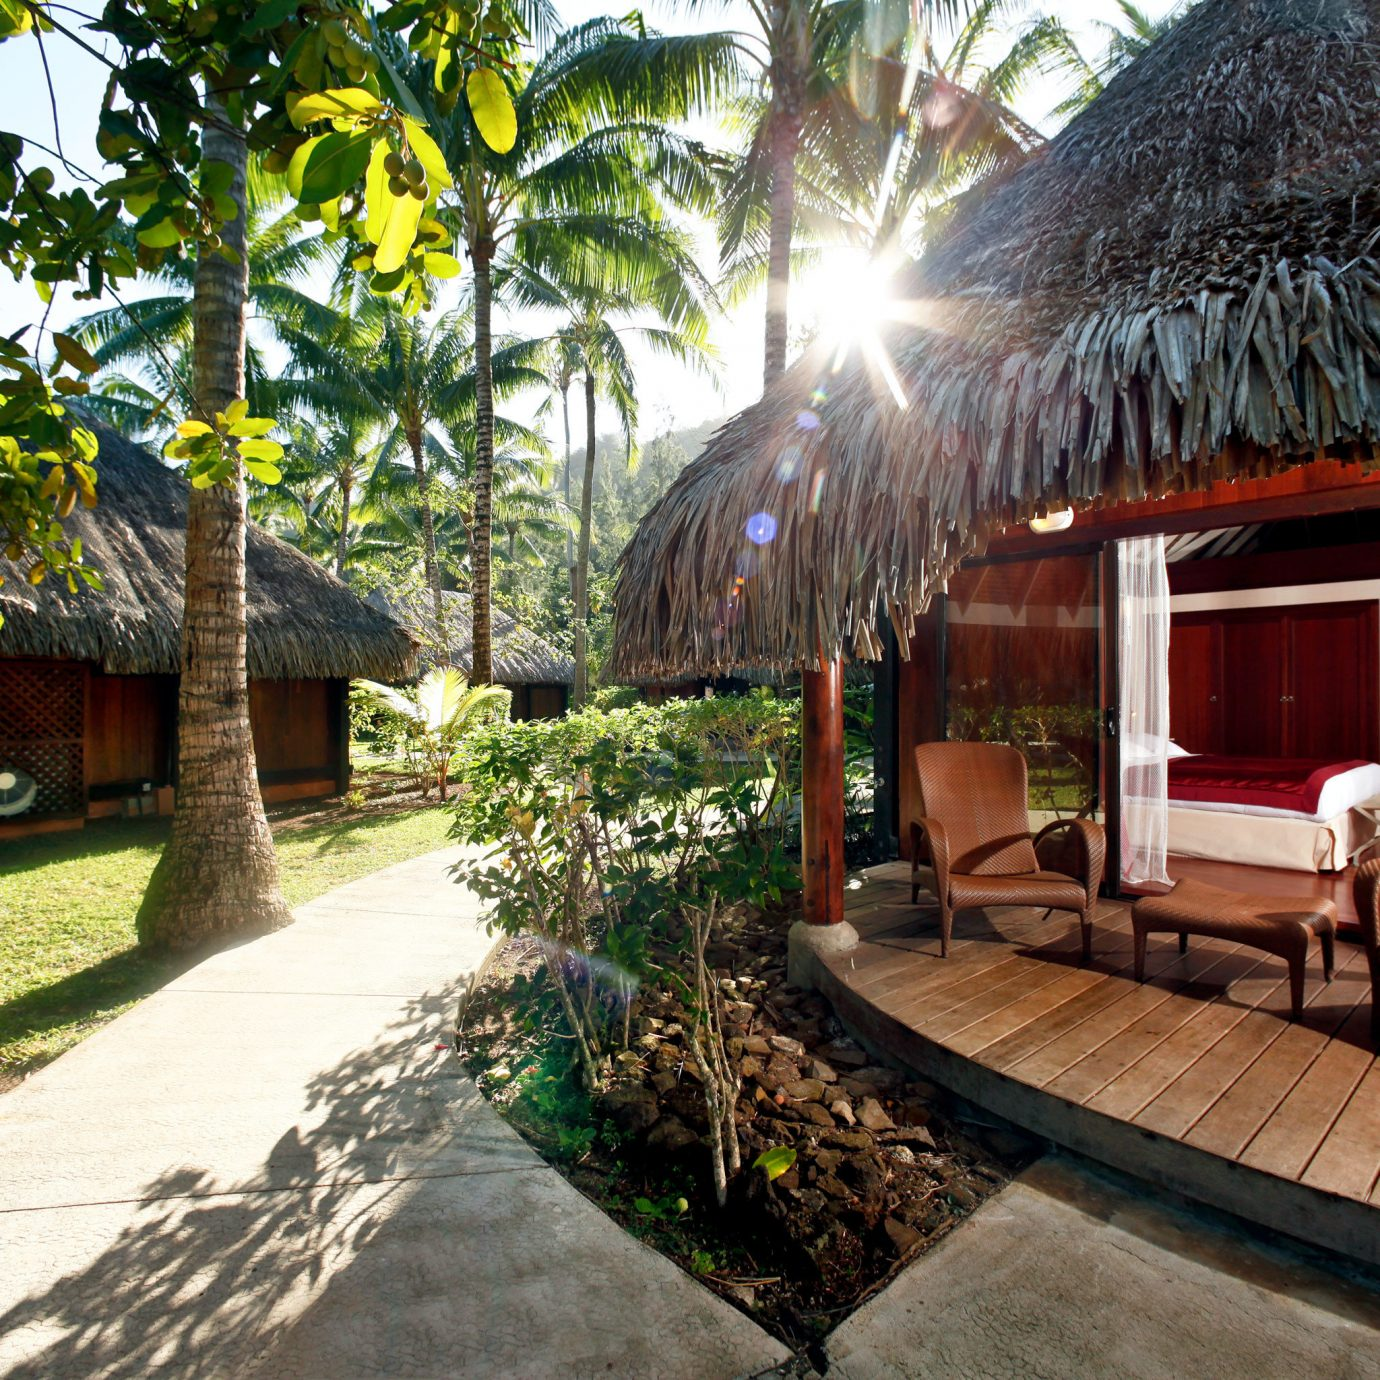 Best Over The Water Bungalows: The World's Best Overwater Bungalows